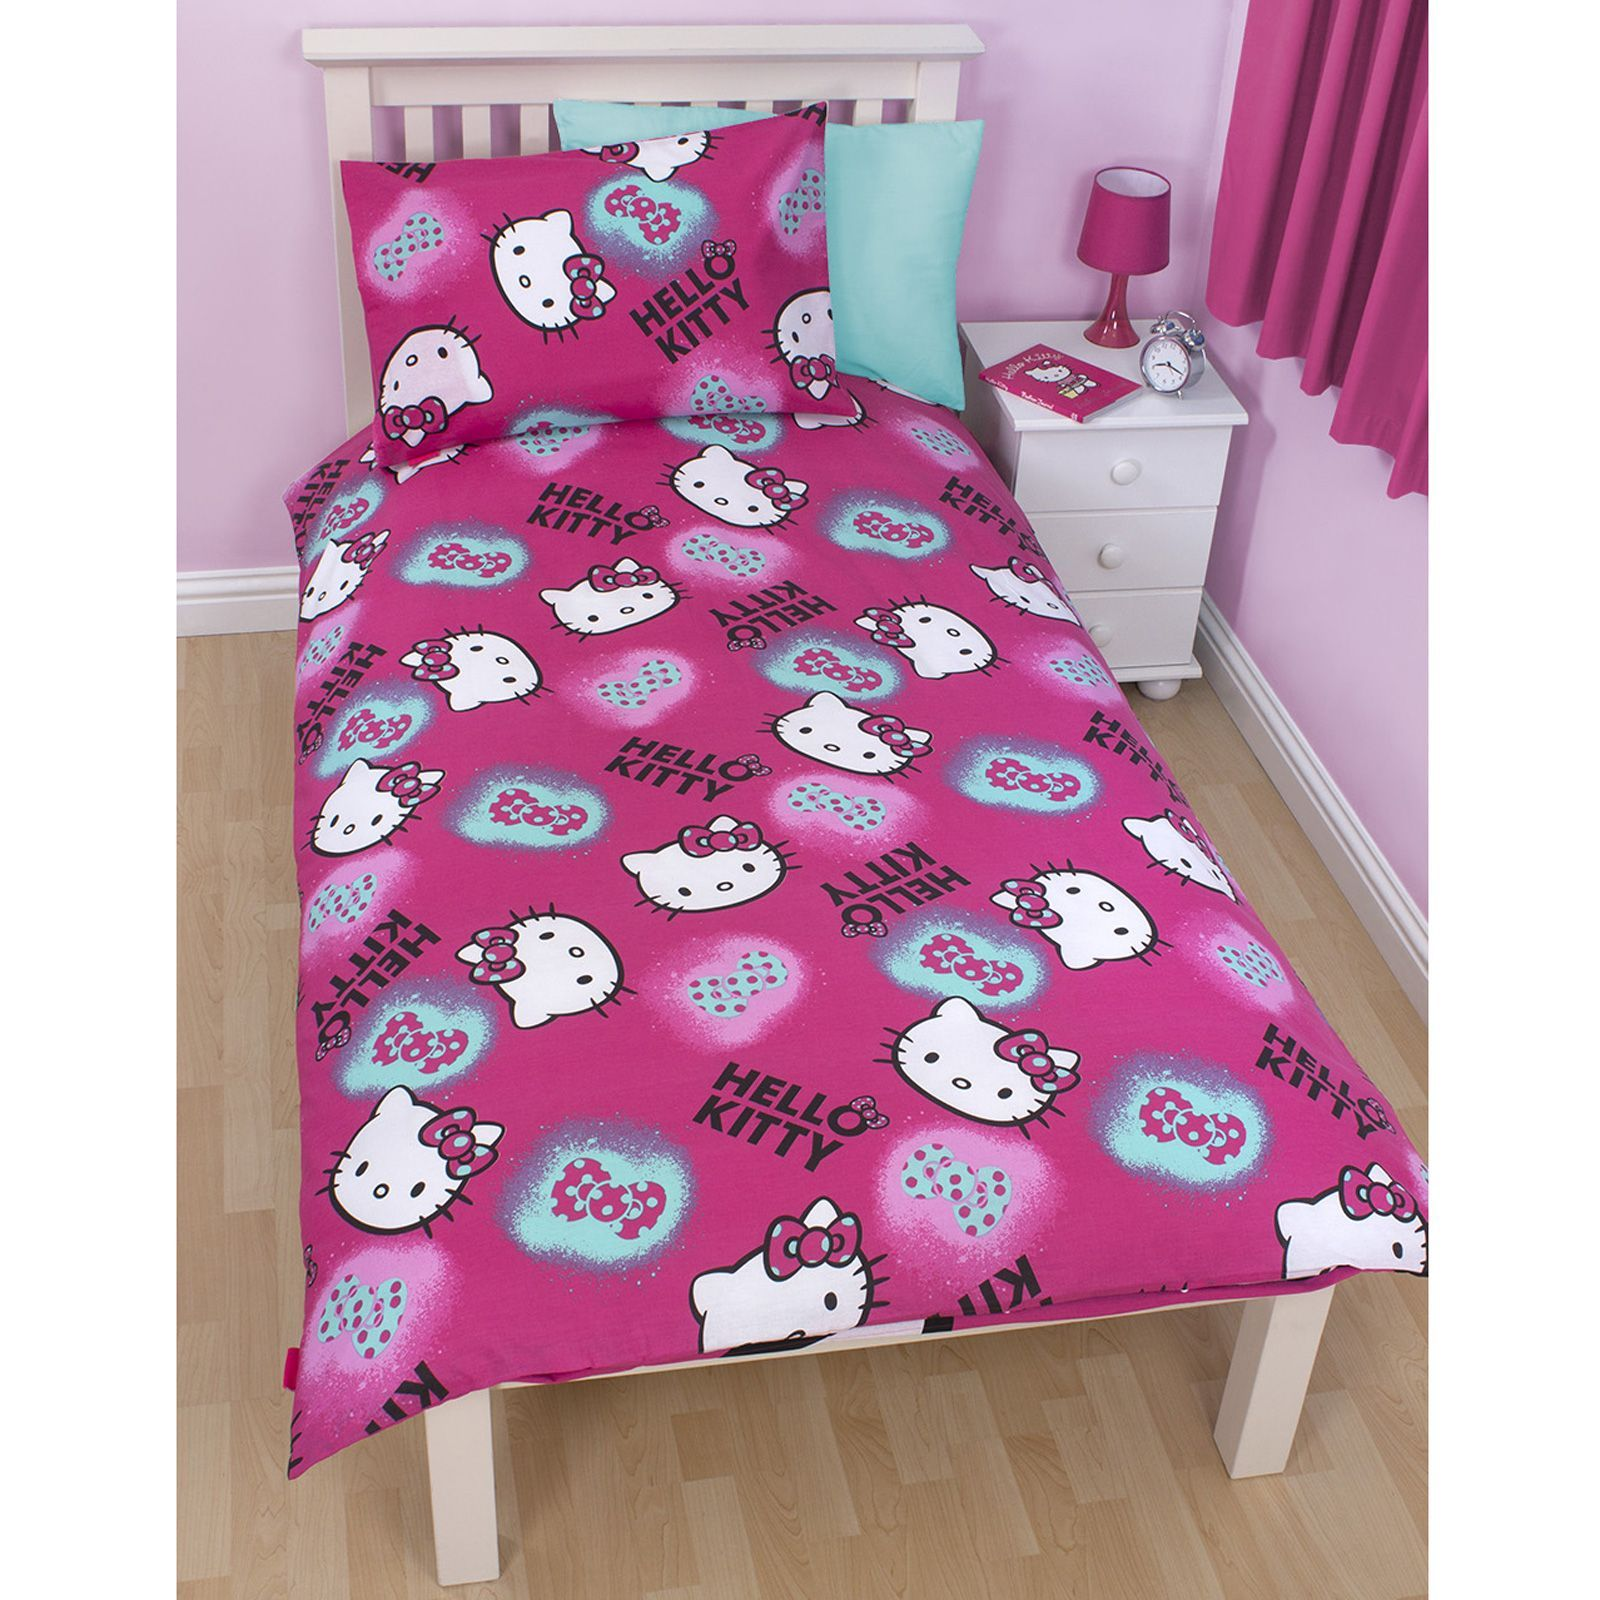 hello kitty ink matching bedding and bedroom accessories childrens new